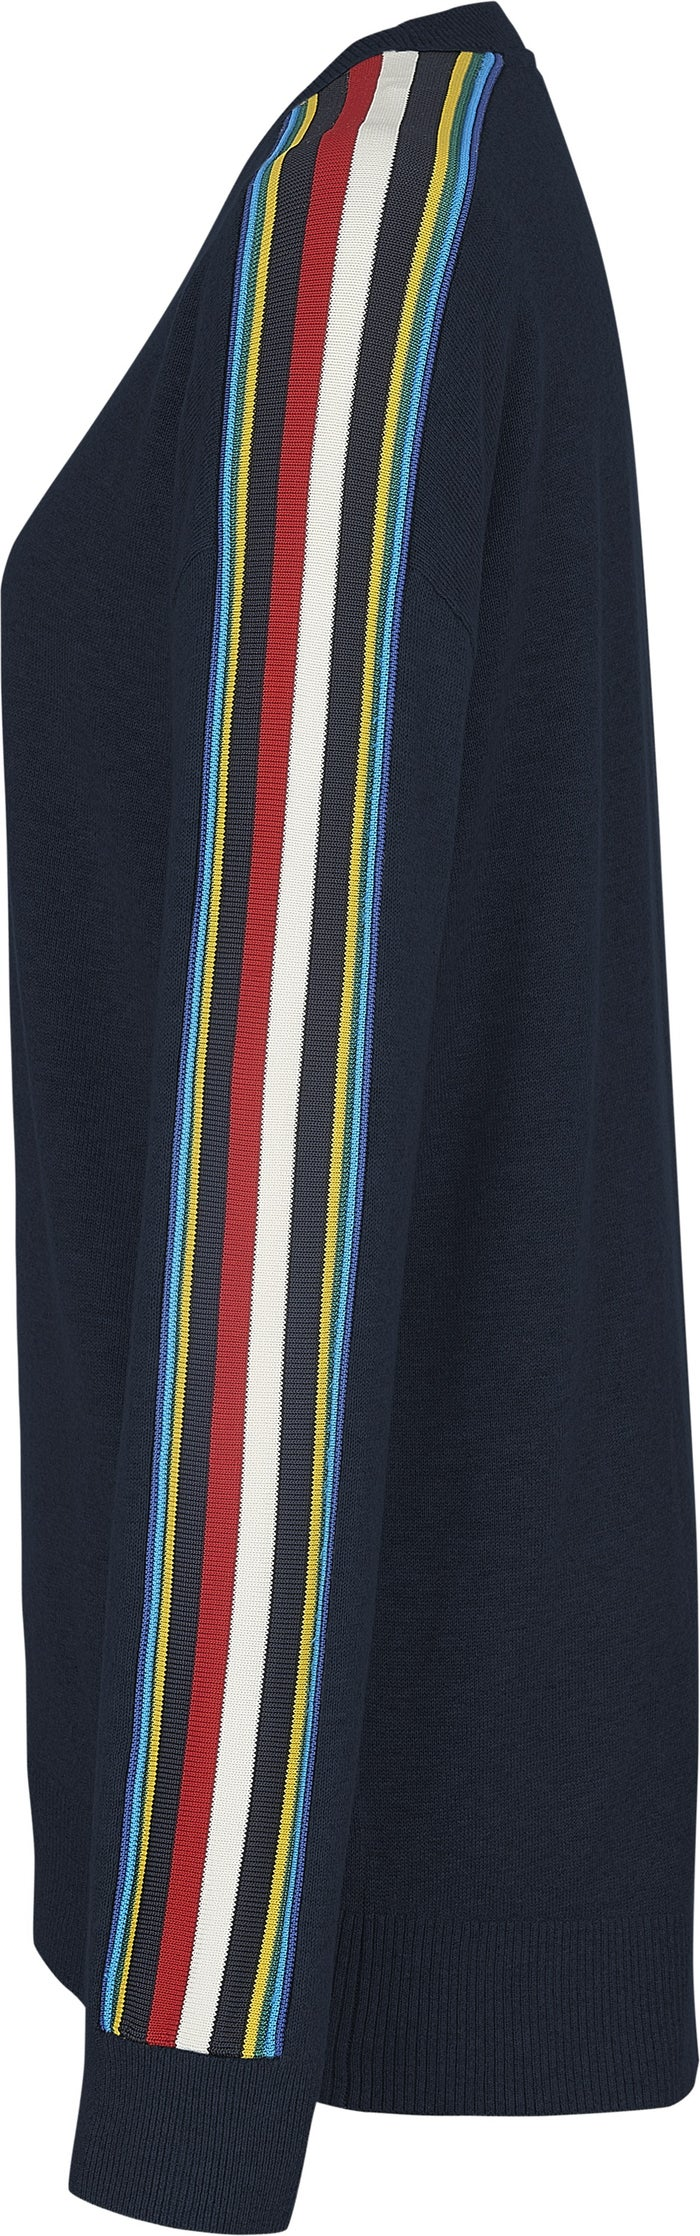 Tommy Hilfiger Jacklyn C-nk Women's Sweater